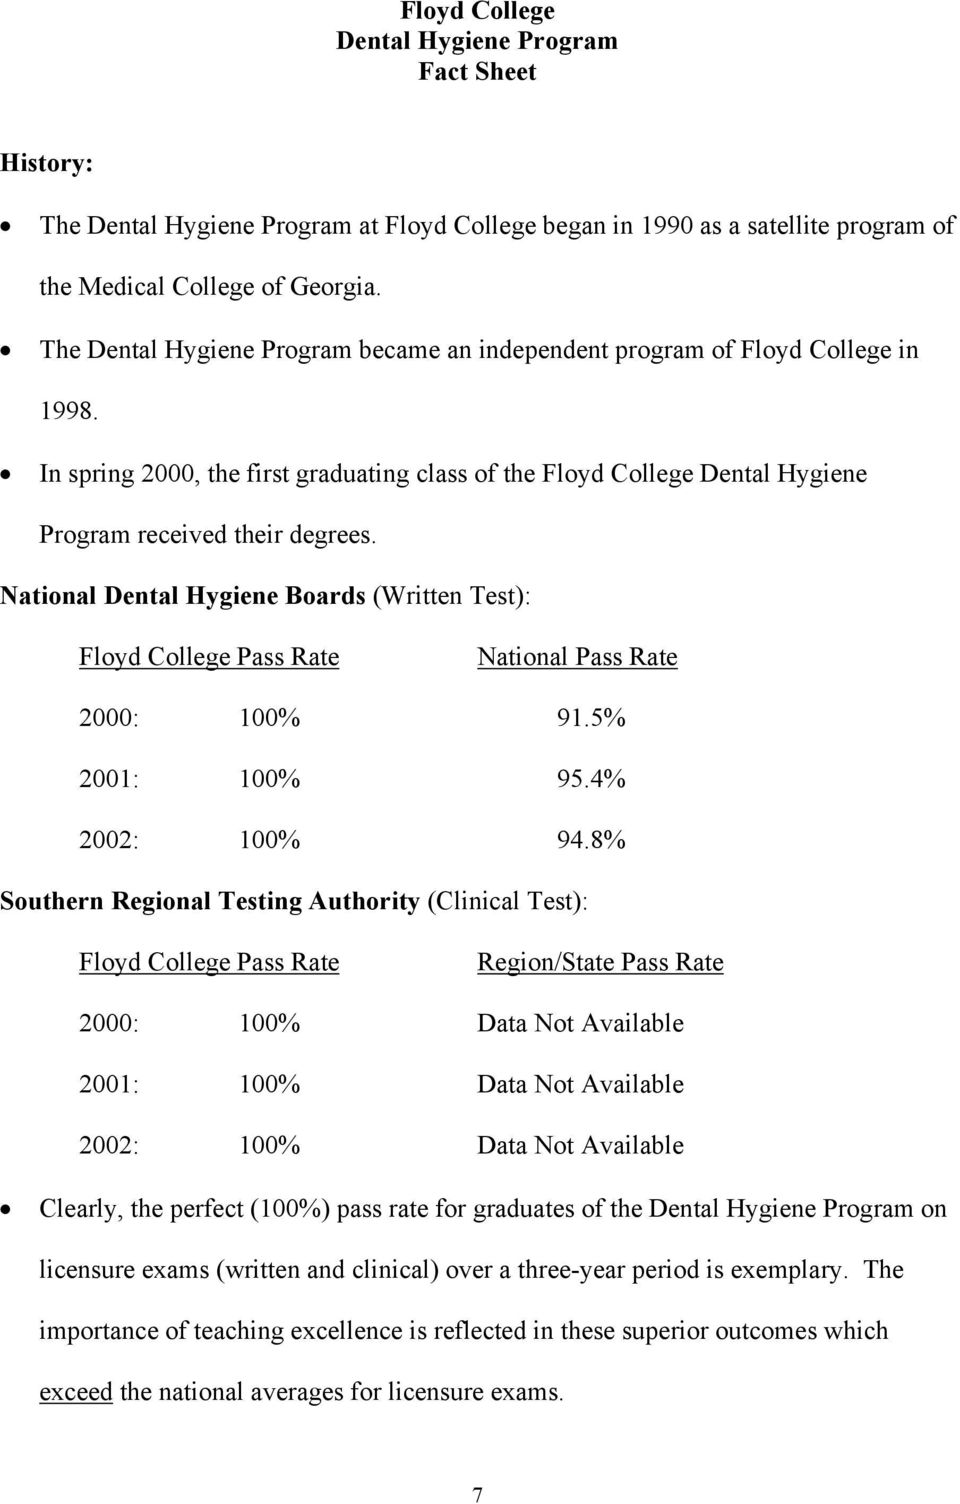 National Dental Hygiene Boards (Written Test): Floyd College Pass Rate National Pass Rate 2000: 100% 91.5% 2001: 100% 95.4% 2002: 100% 94.